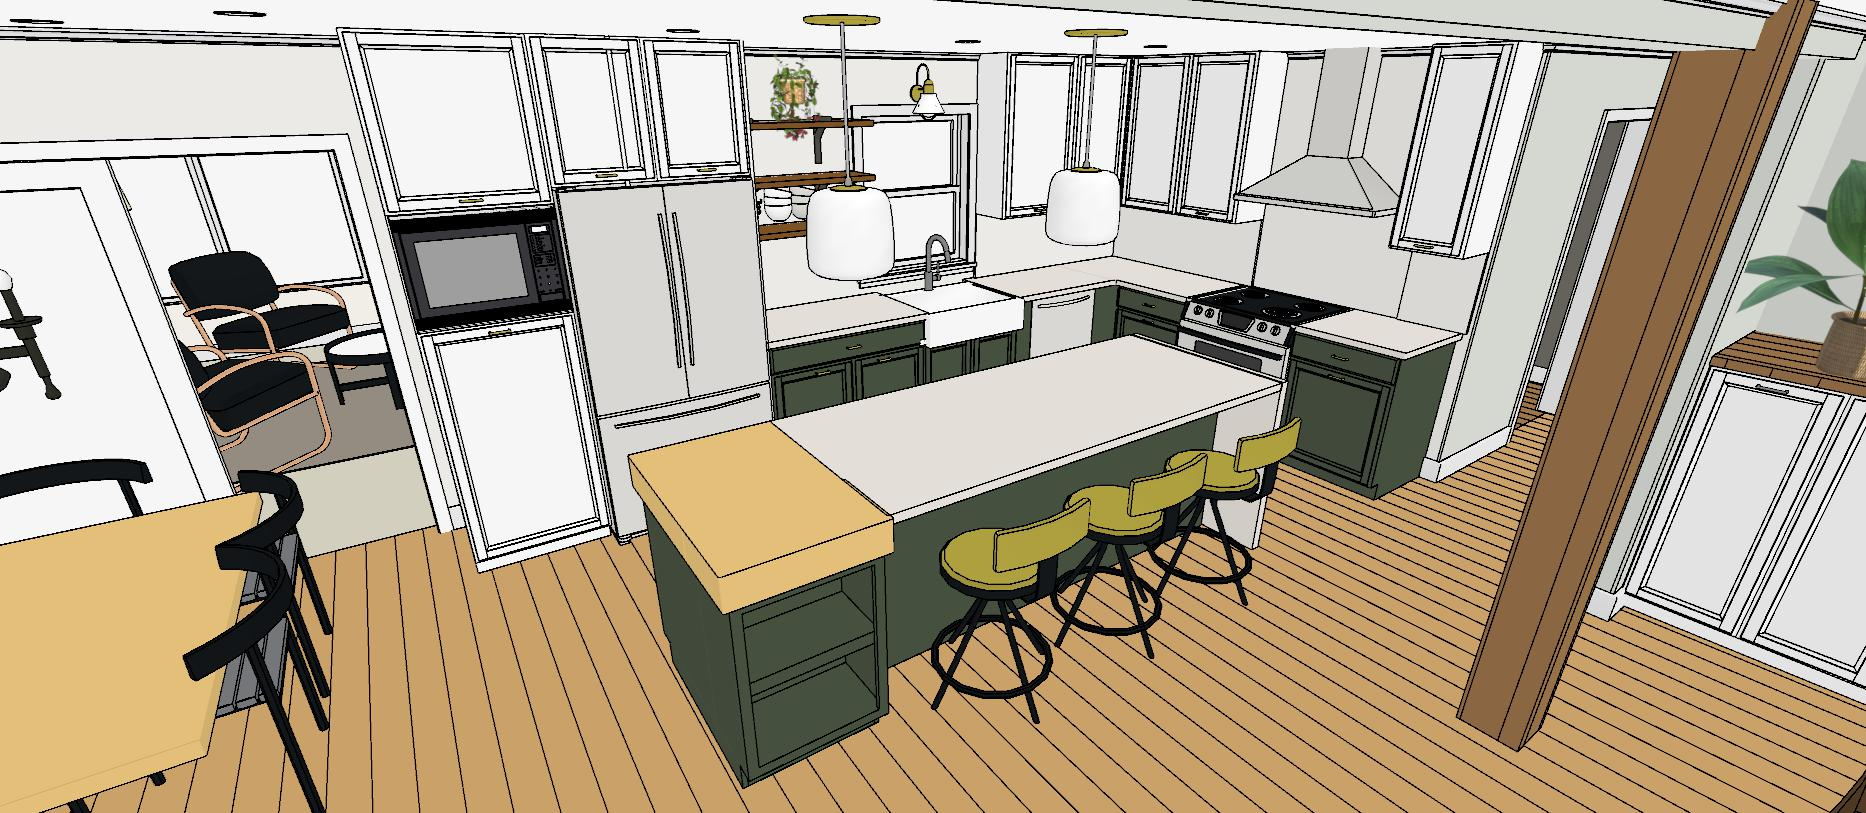 Kitchen Remodel Vector View